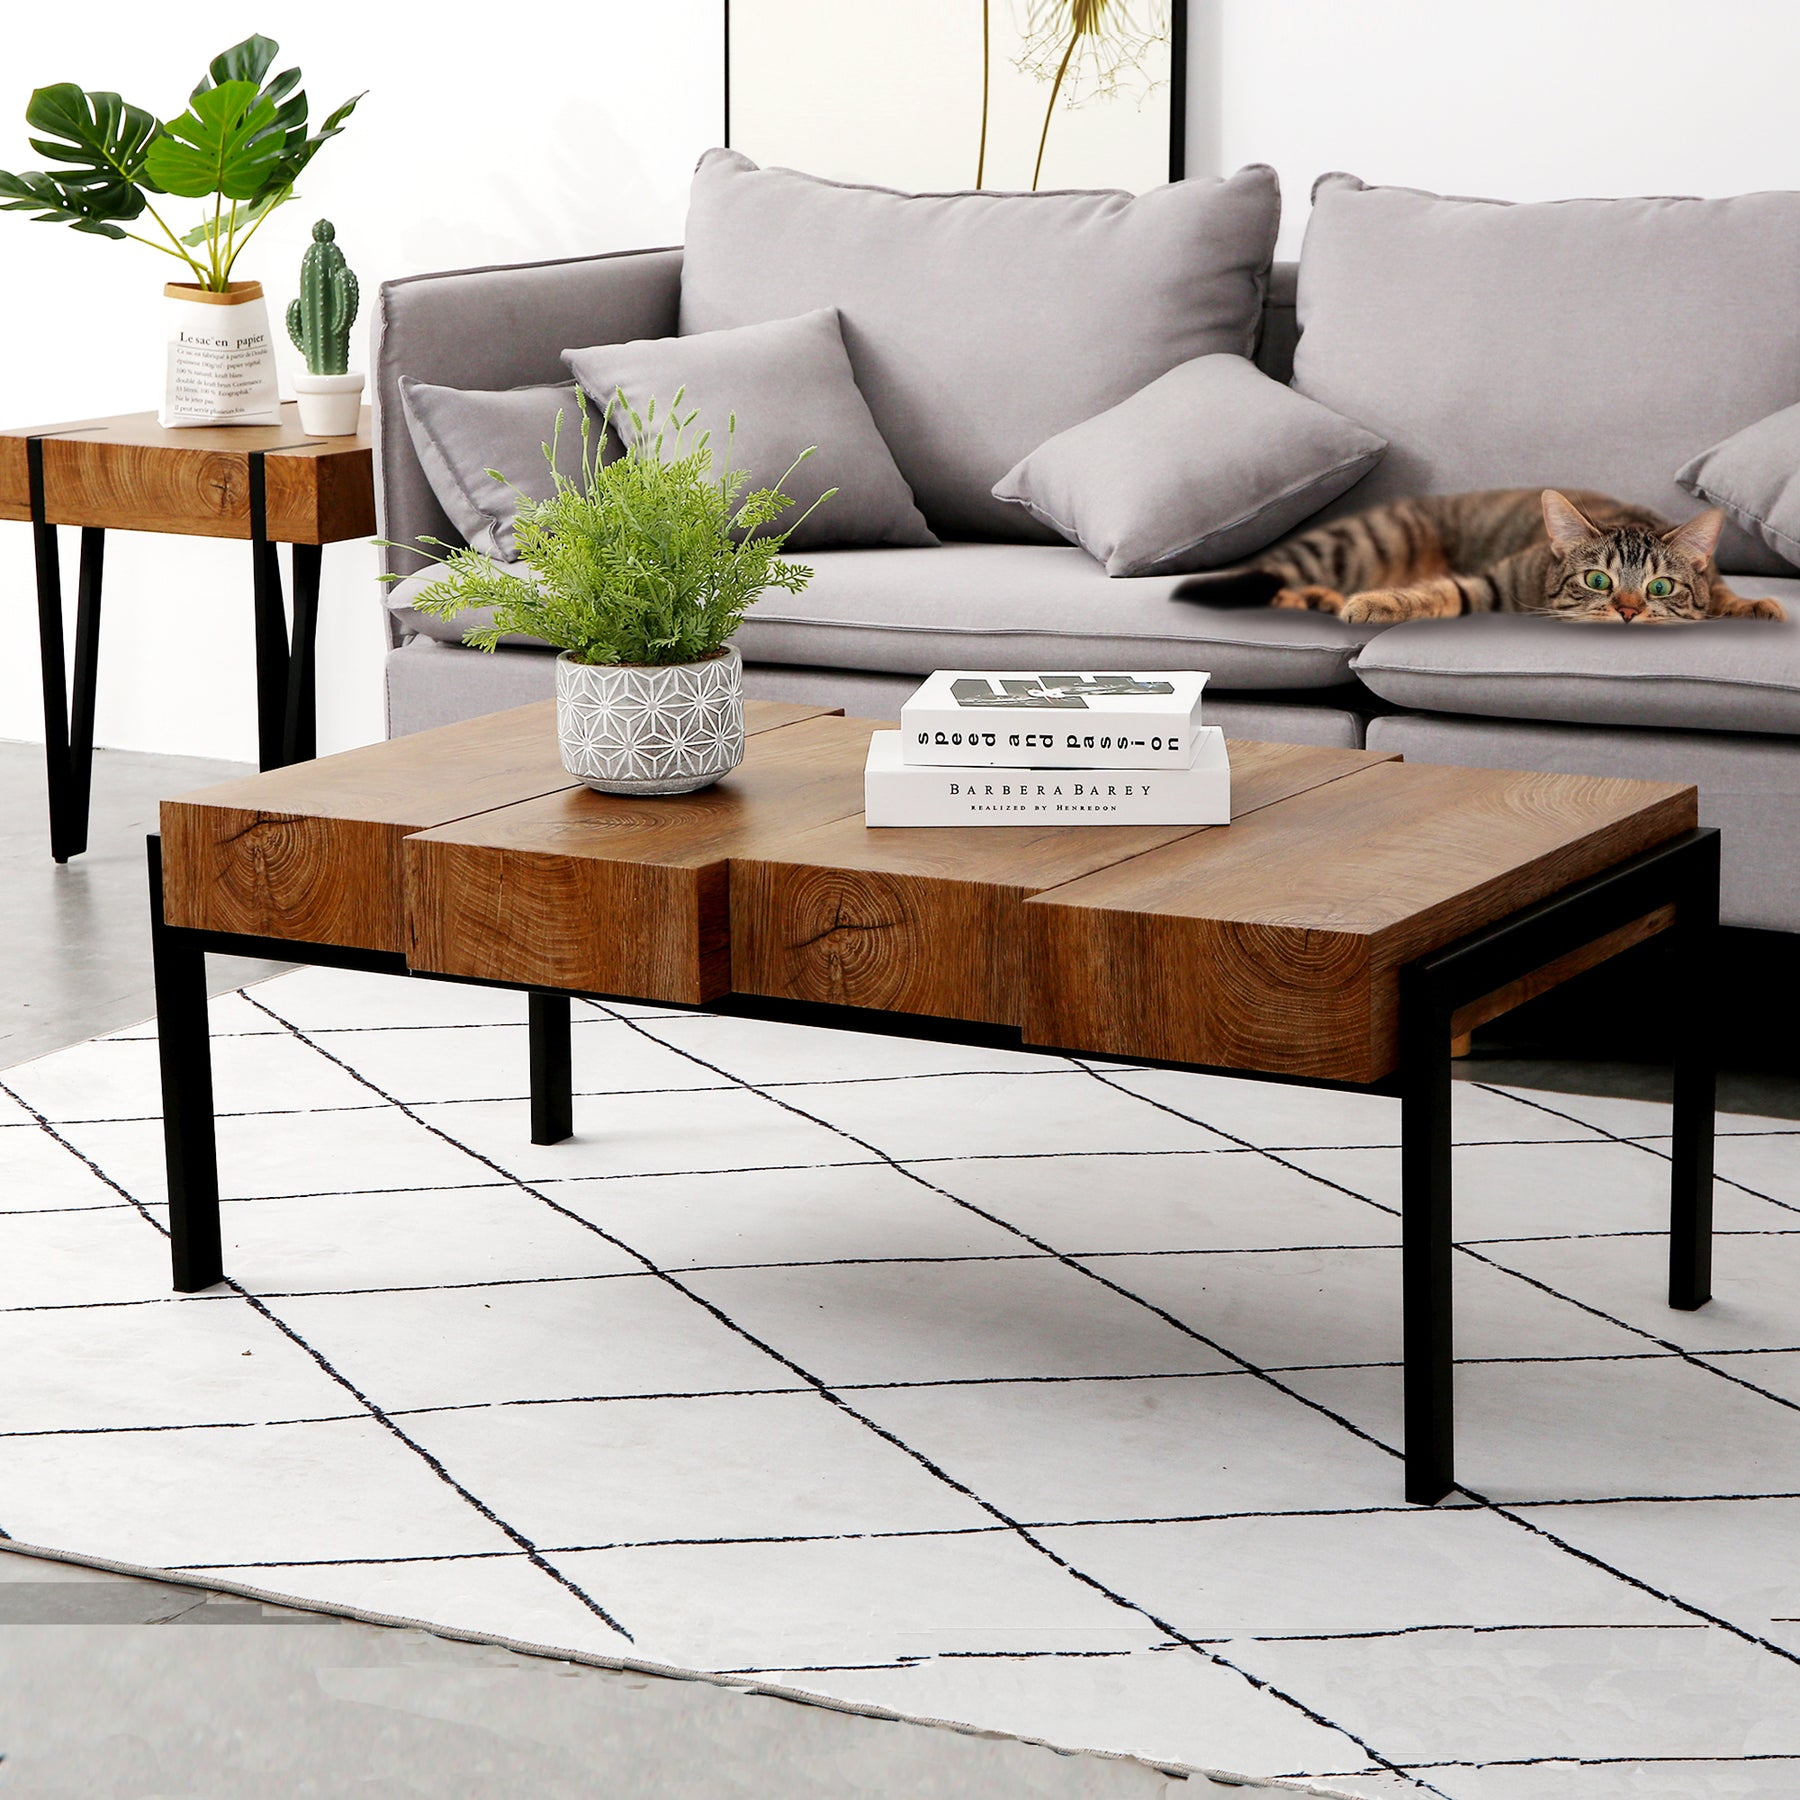 Mcombo Modern Industrial Simple Design Wood Coffee Table For